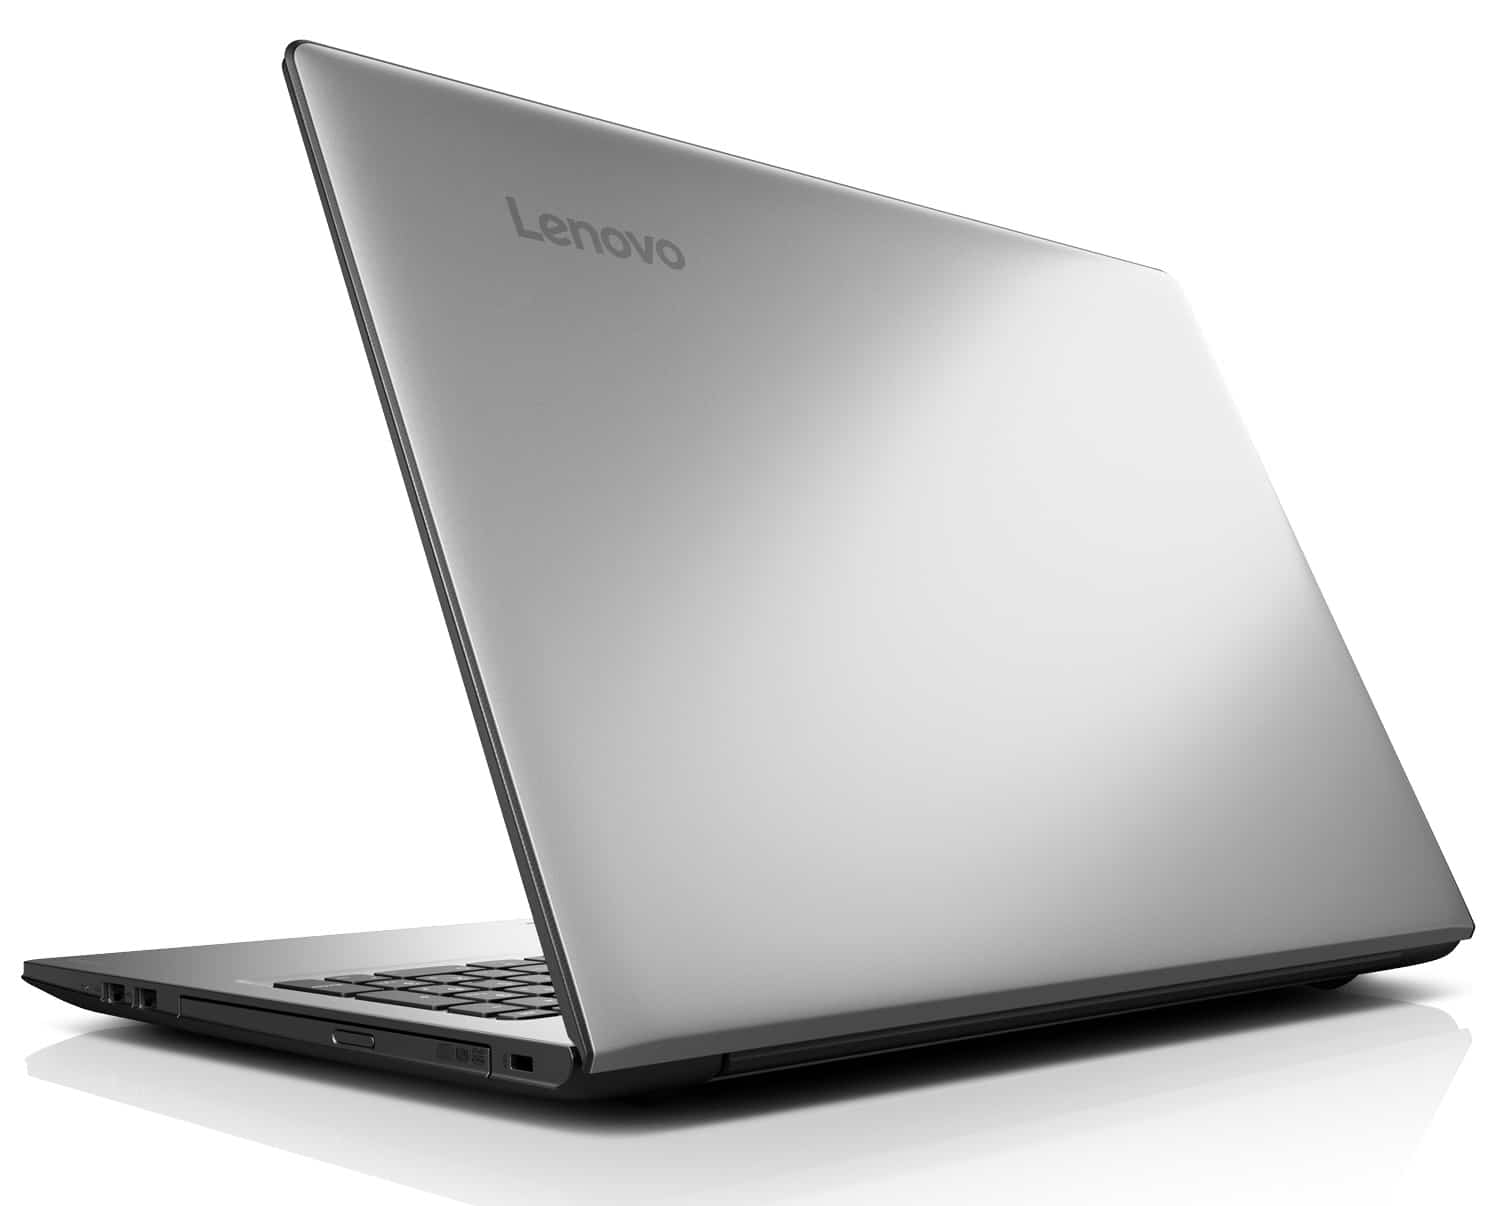 Lenovo IdeaPad 310-15IKB, PC 15 pouces Full HD SSD i5 Kaby 920M (599€)